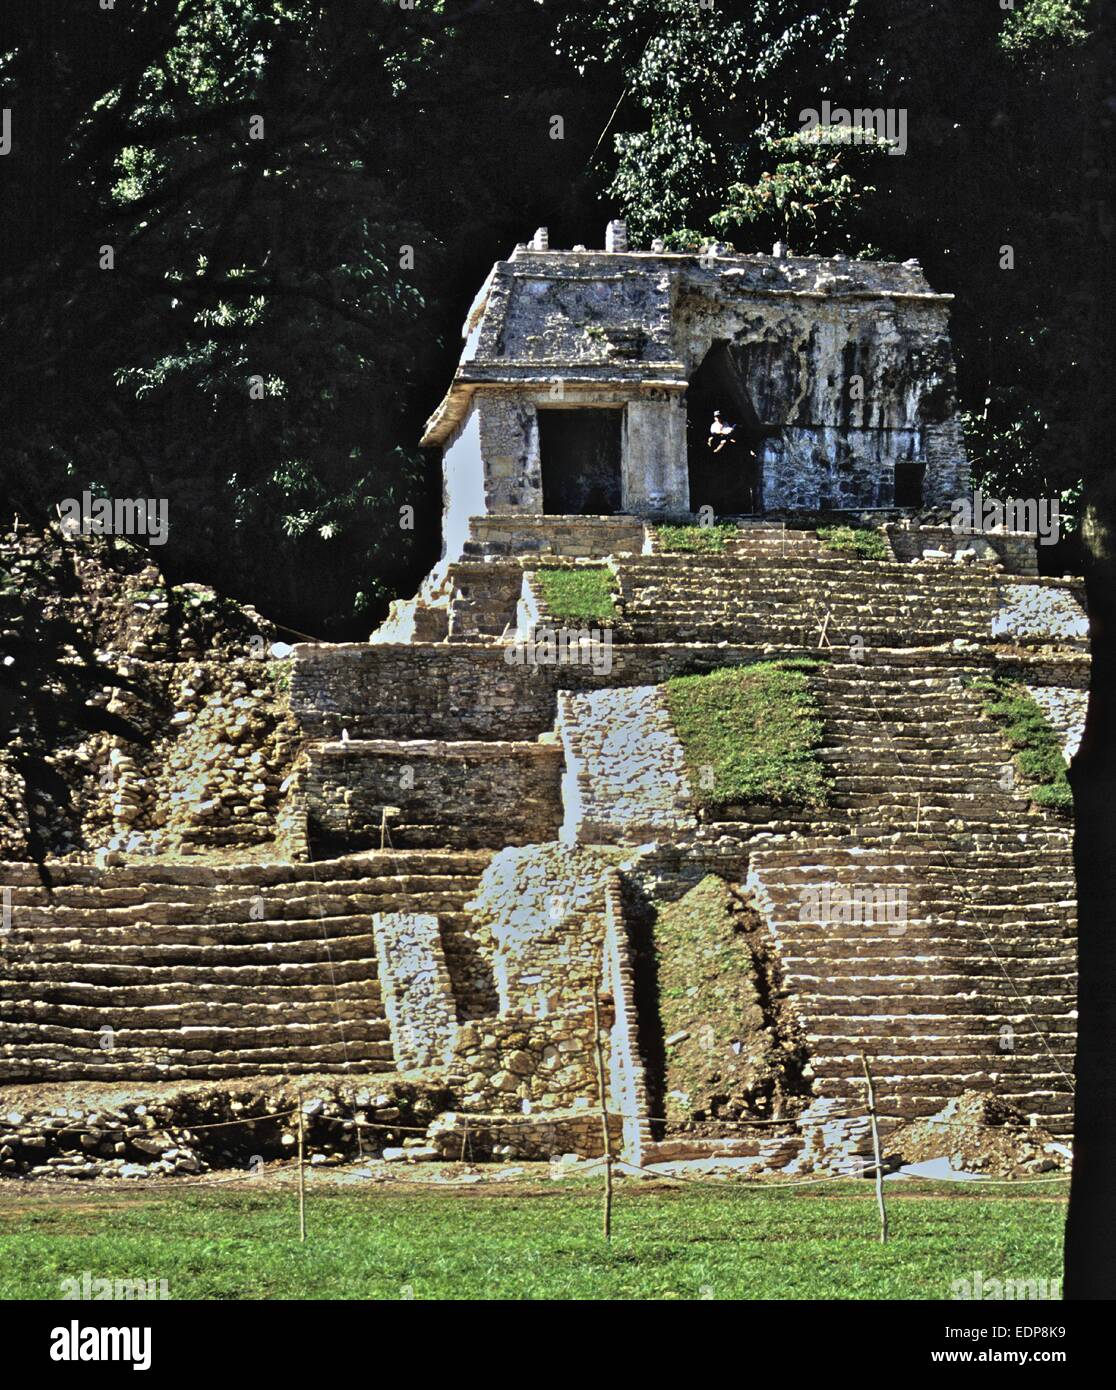 Mexico - Maya ruins at Palenque - one of the biggest and best archaeological sites in Mexico Temple XVII - Stock Image